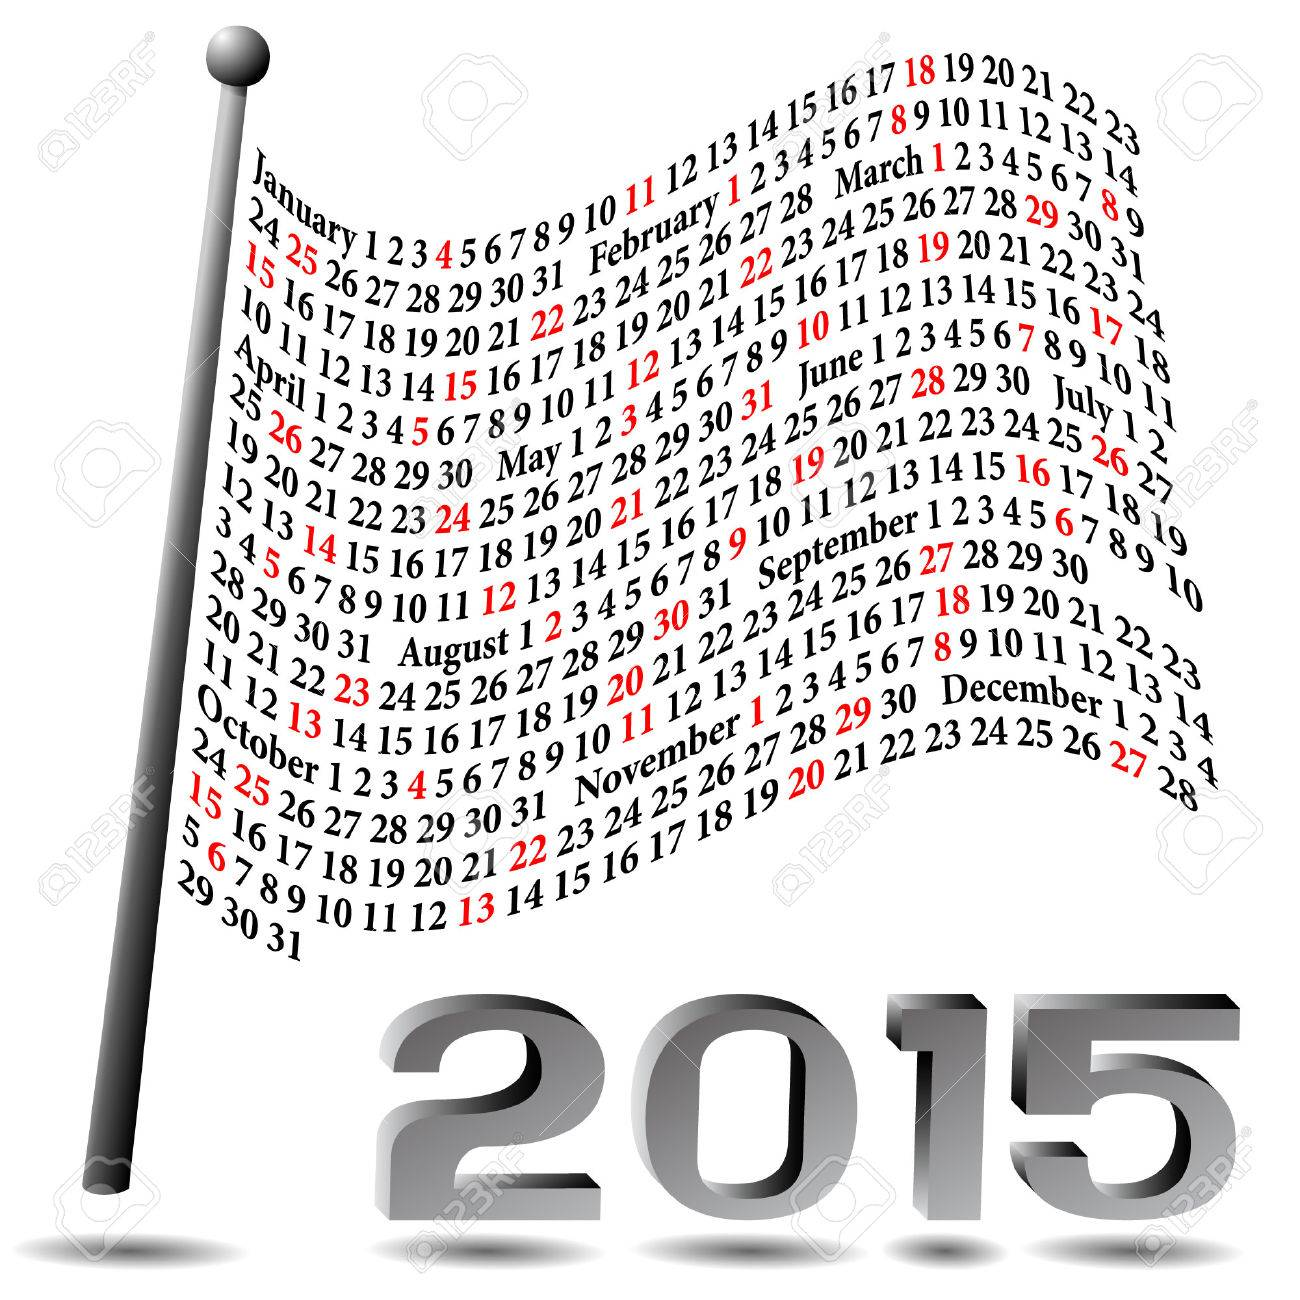 This calendar of 2015 is represented as a waving flag with a 3D appearance. Each Sunday is colored in red - 30482435